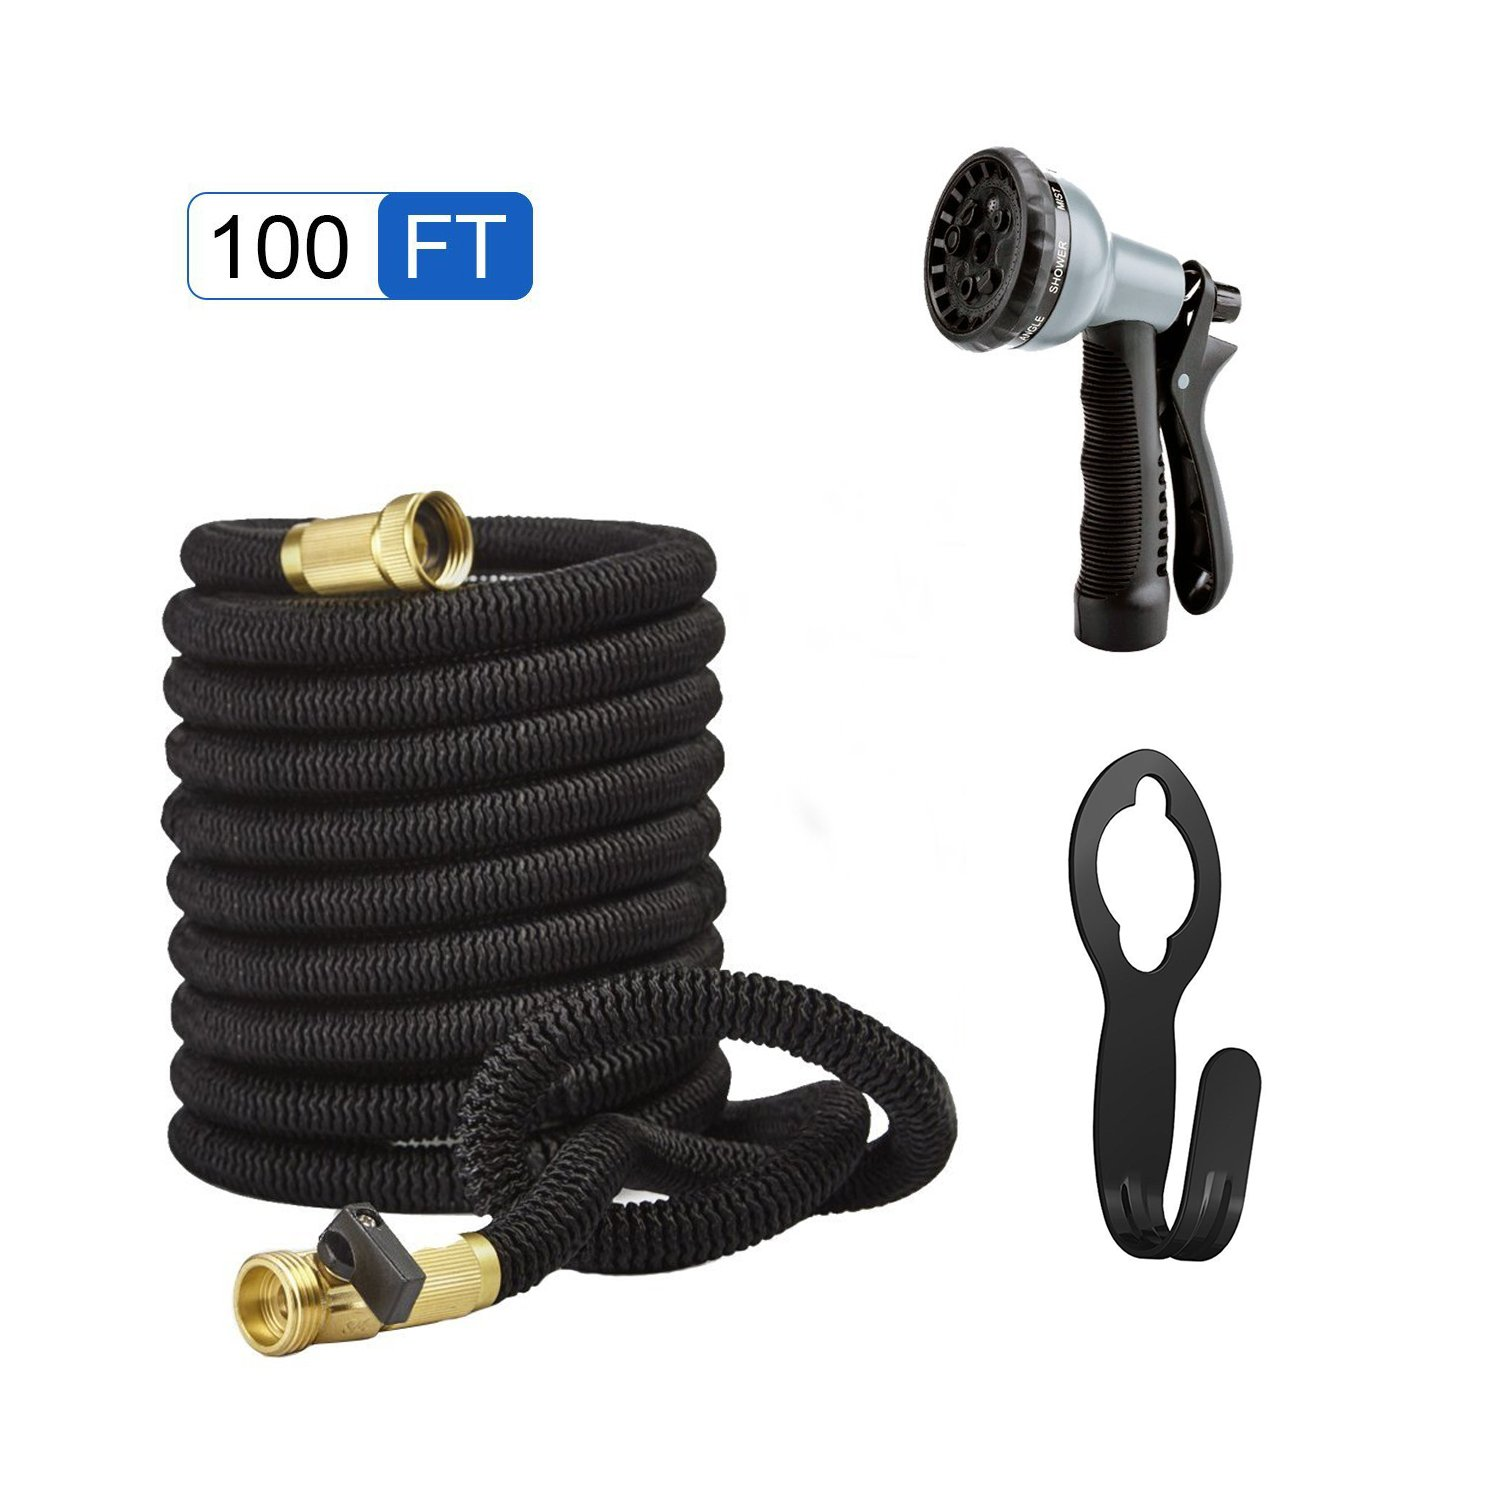 Garden Hose 100ft Expanding Garden Collapsible Flexible Lightweight Hose ,Solid Brass Connectors,Hose Holder and 8 Pattern Spray Nozzle Water Hose Set (Black) (100 Feet) by SuperGrowing